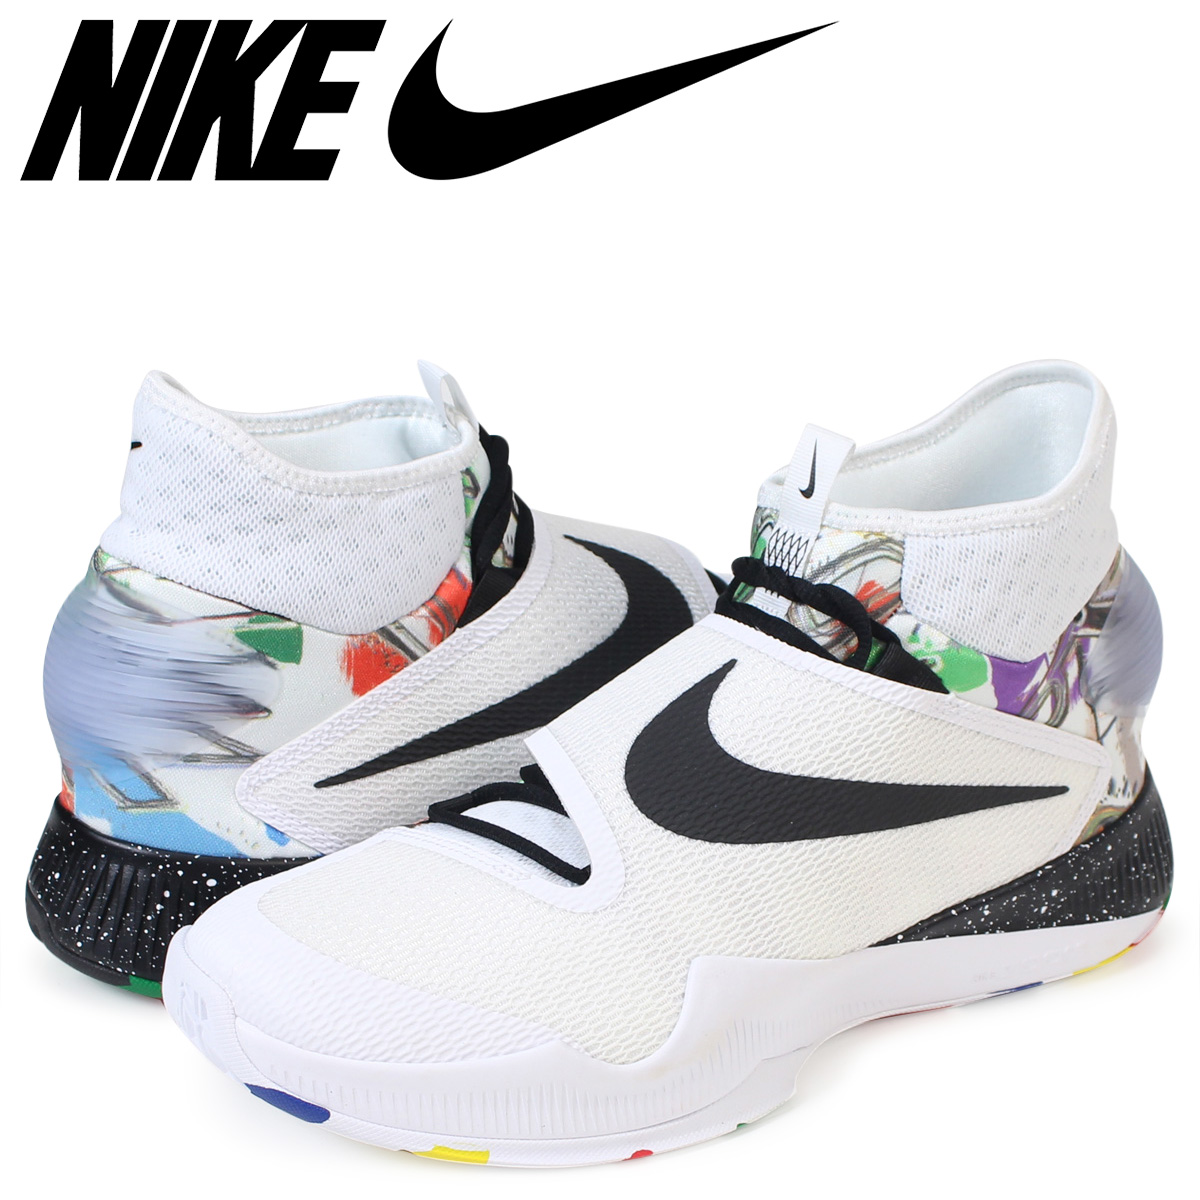 best selling better best loved Rais ugly knee car ZOOM HYPERREV 2016 LIMITED EP 820,220-100 men's shoes  white yes soft-headed NIKE Nike zoom